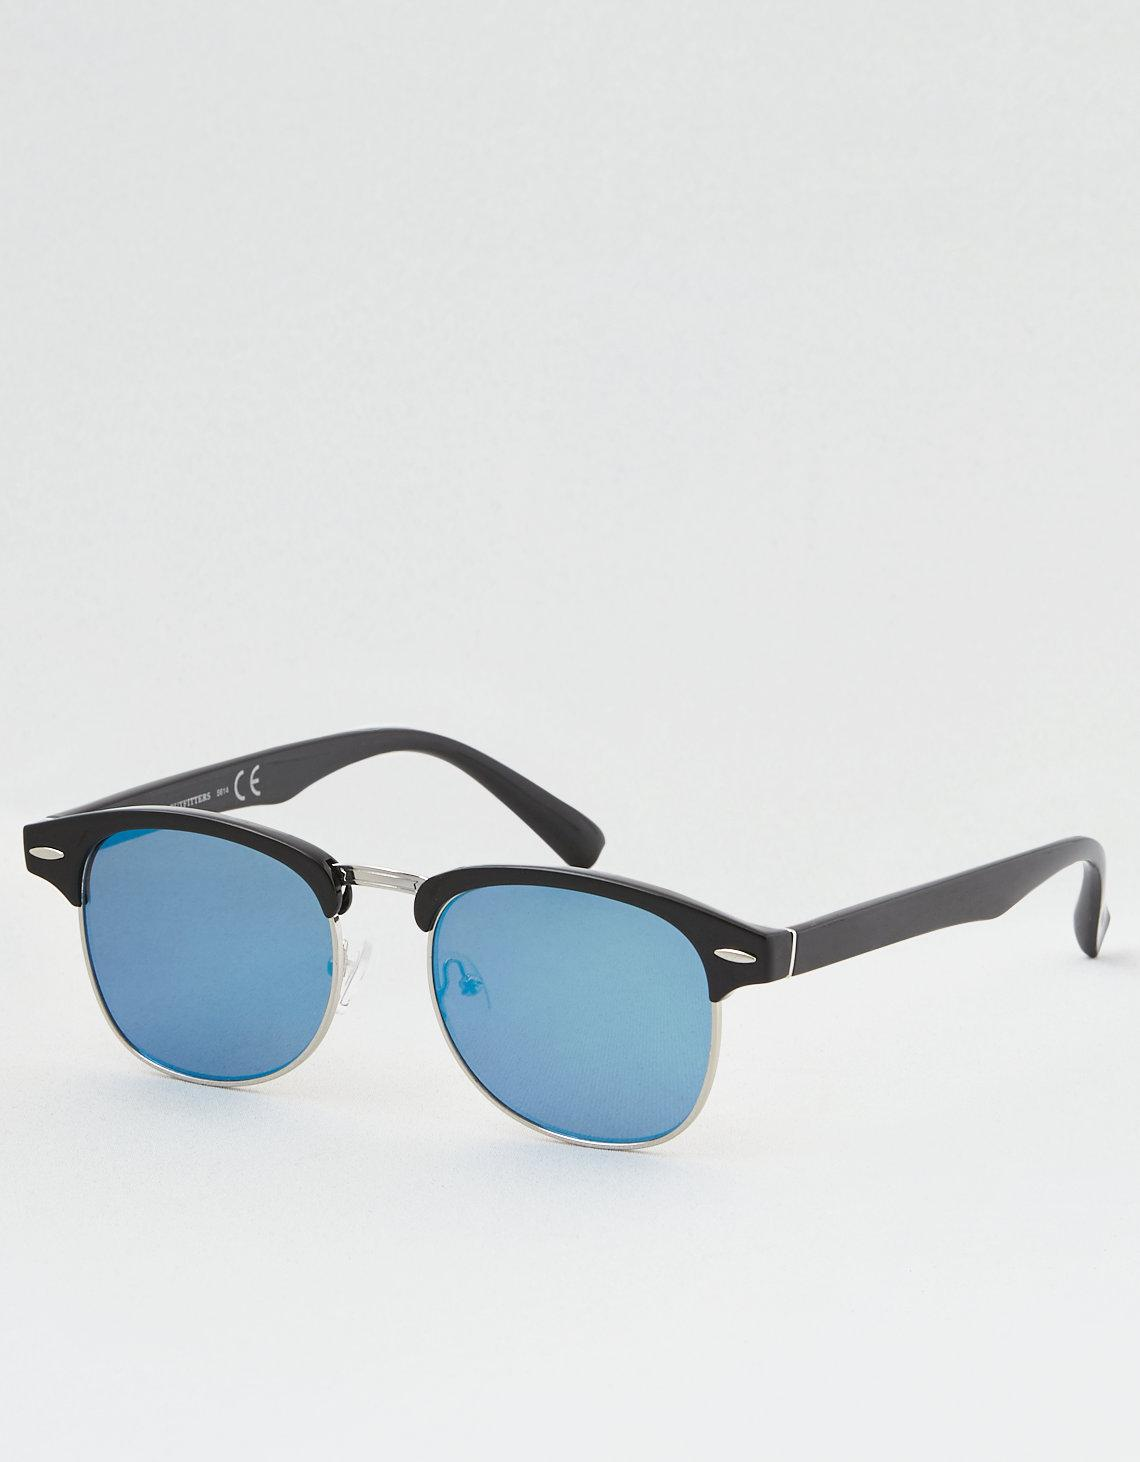 21ebbfe74e1 Lyst - American Eagle Ae Club Sunglasses in Blue for Men - Save 53%